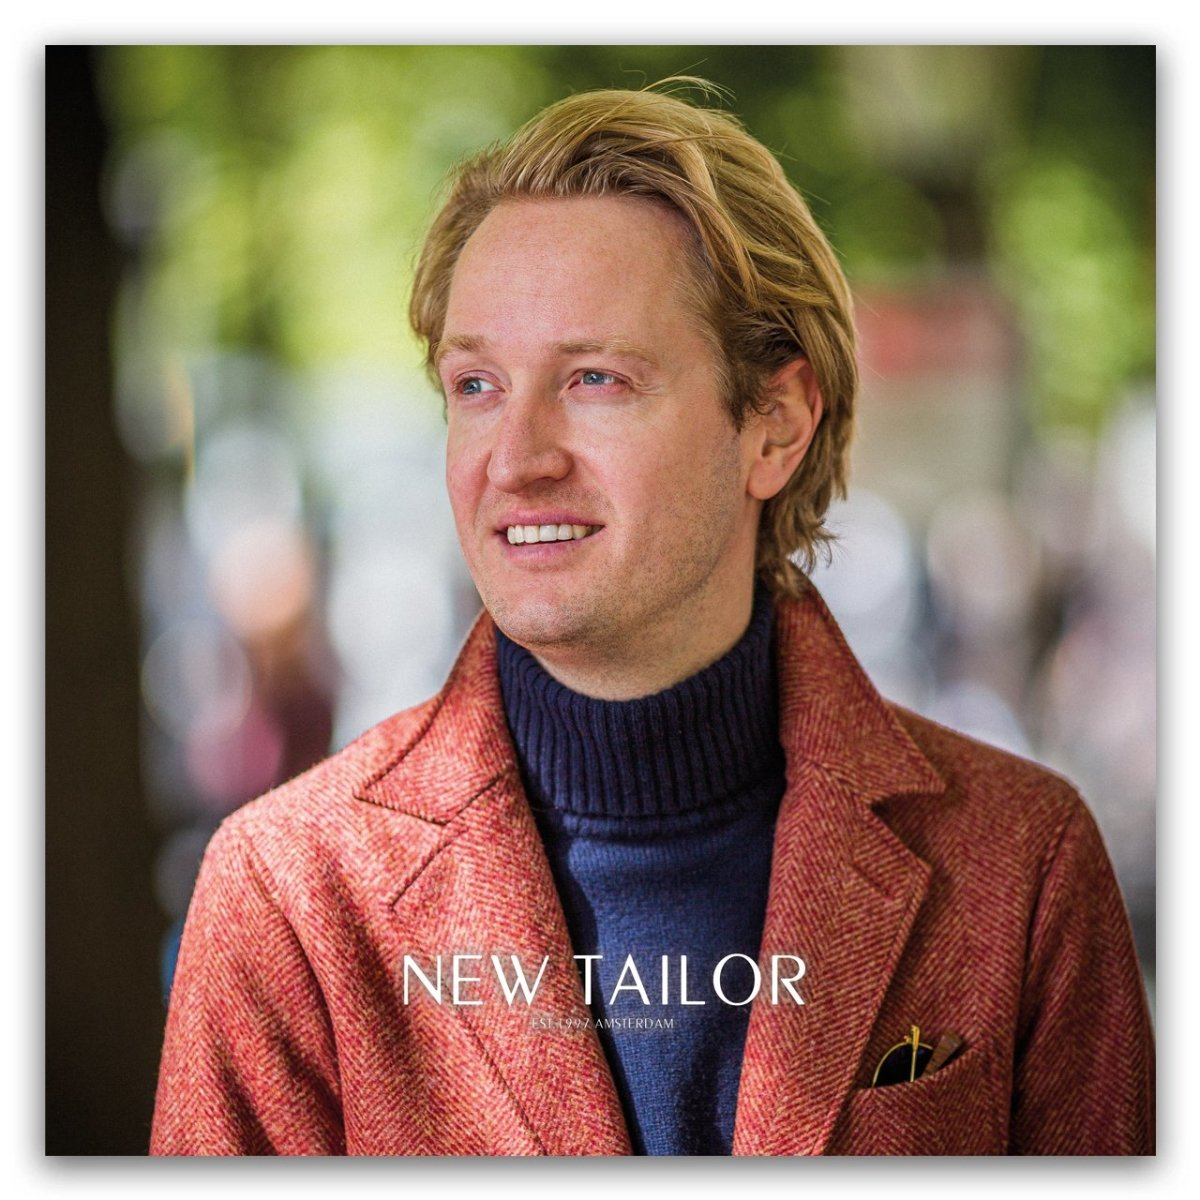 NEW TAILOR - Magazine, Herfst & Winter 2020, Boeken | NEW TAILOR Webshop